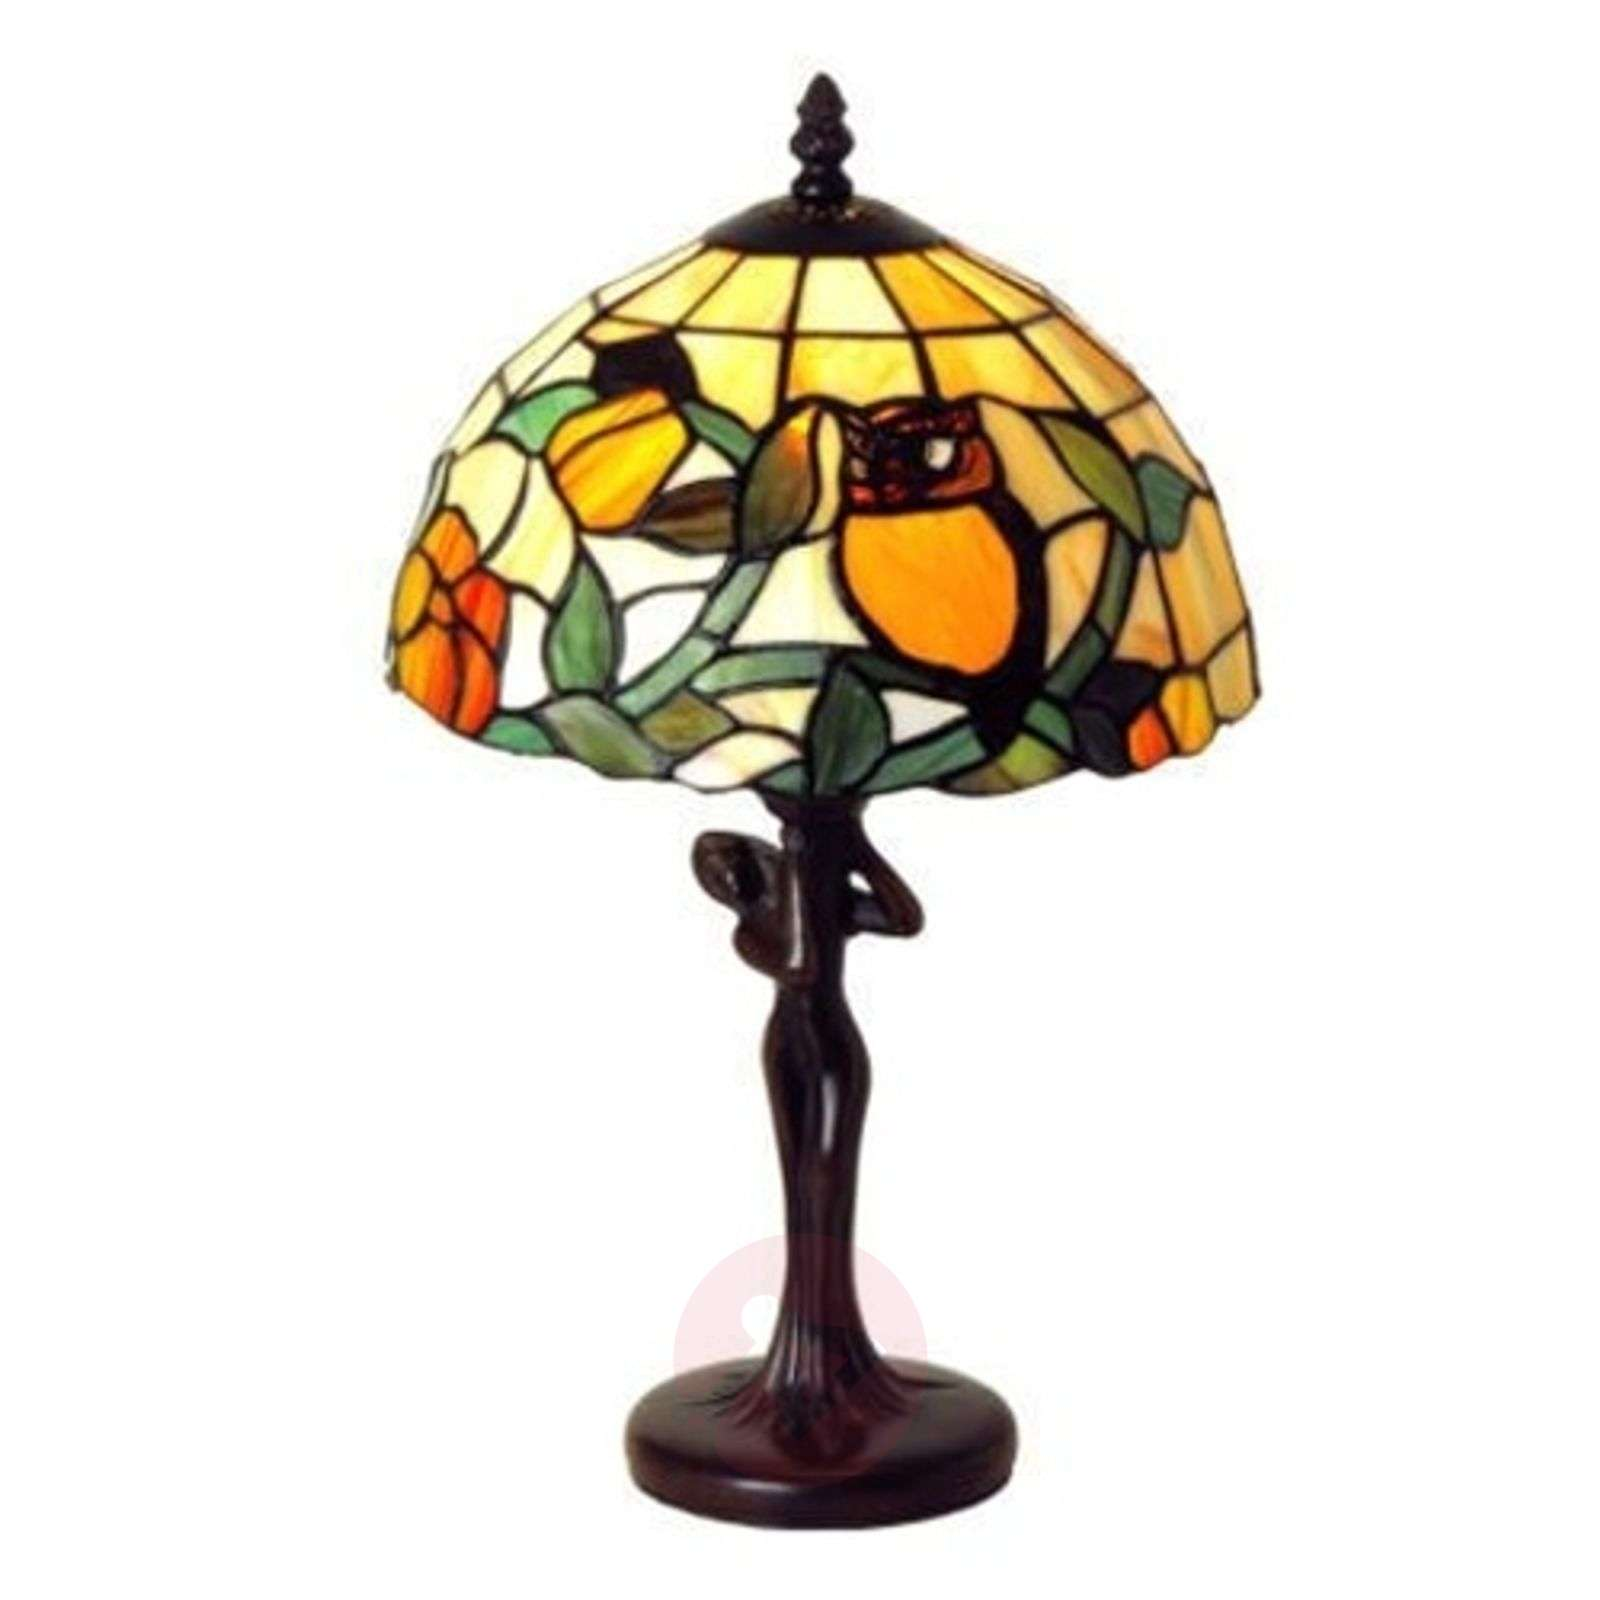 LIEKE table lamp in tje Tiffany style-1032199-01